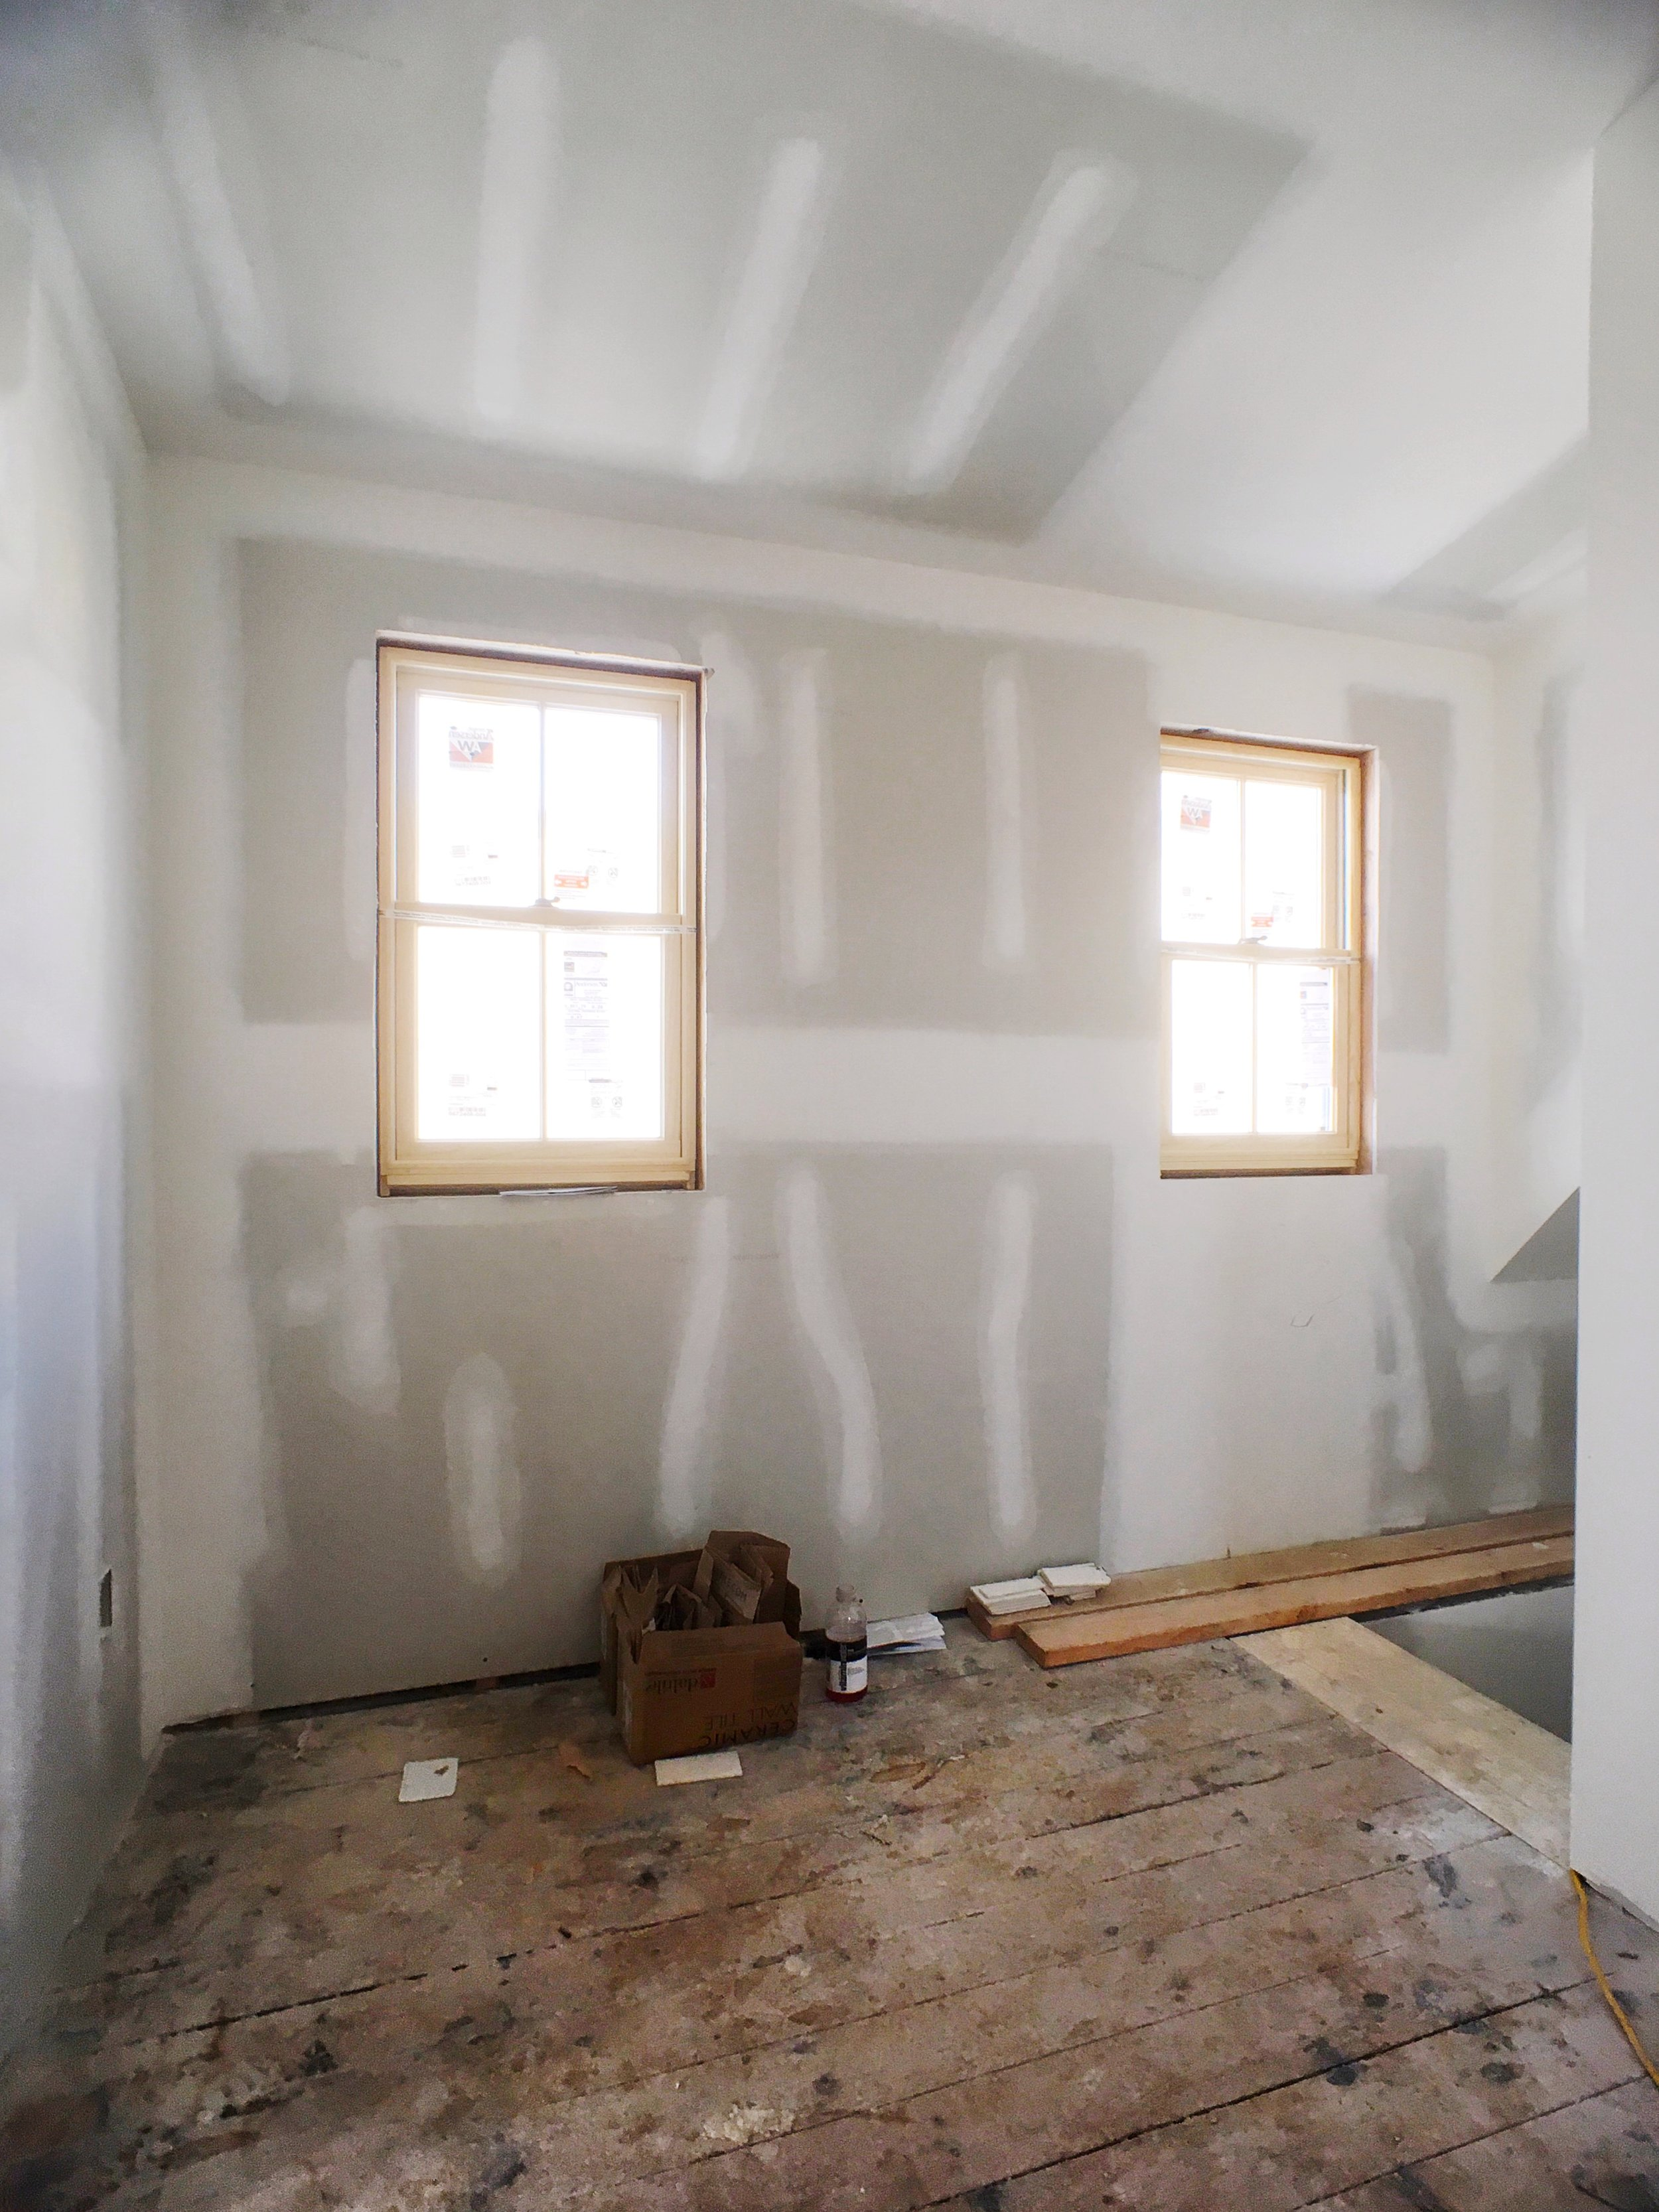 Dormer windows provide some much needed light to the 3rd floor hall and stairwell. We are excited to make this into a little reading nook. Soon enough you will find us sipping tea here in the evenings.